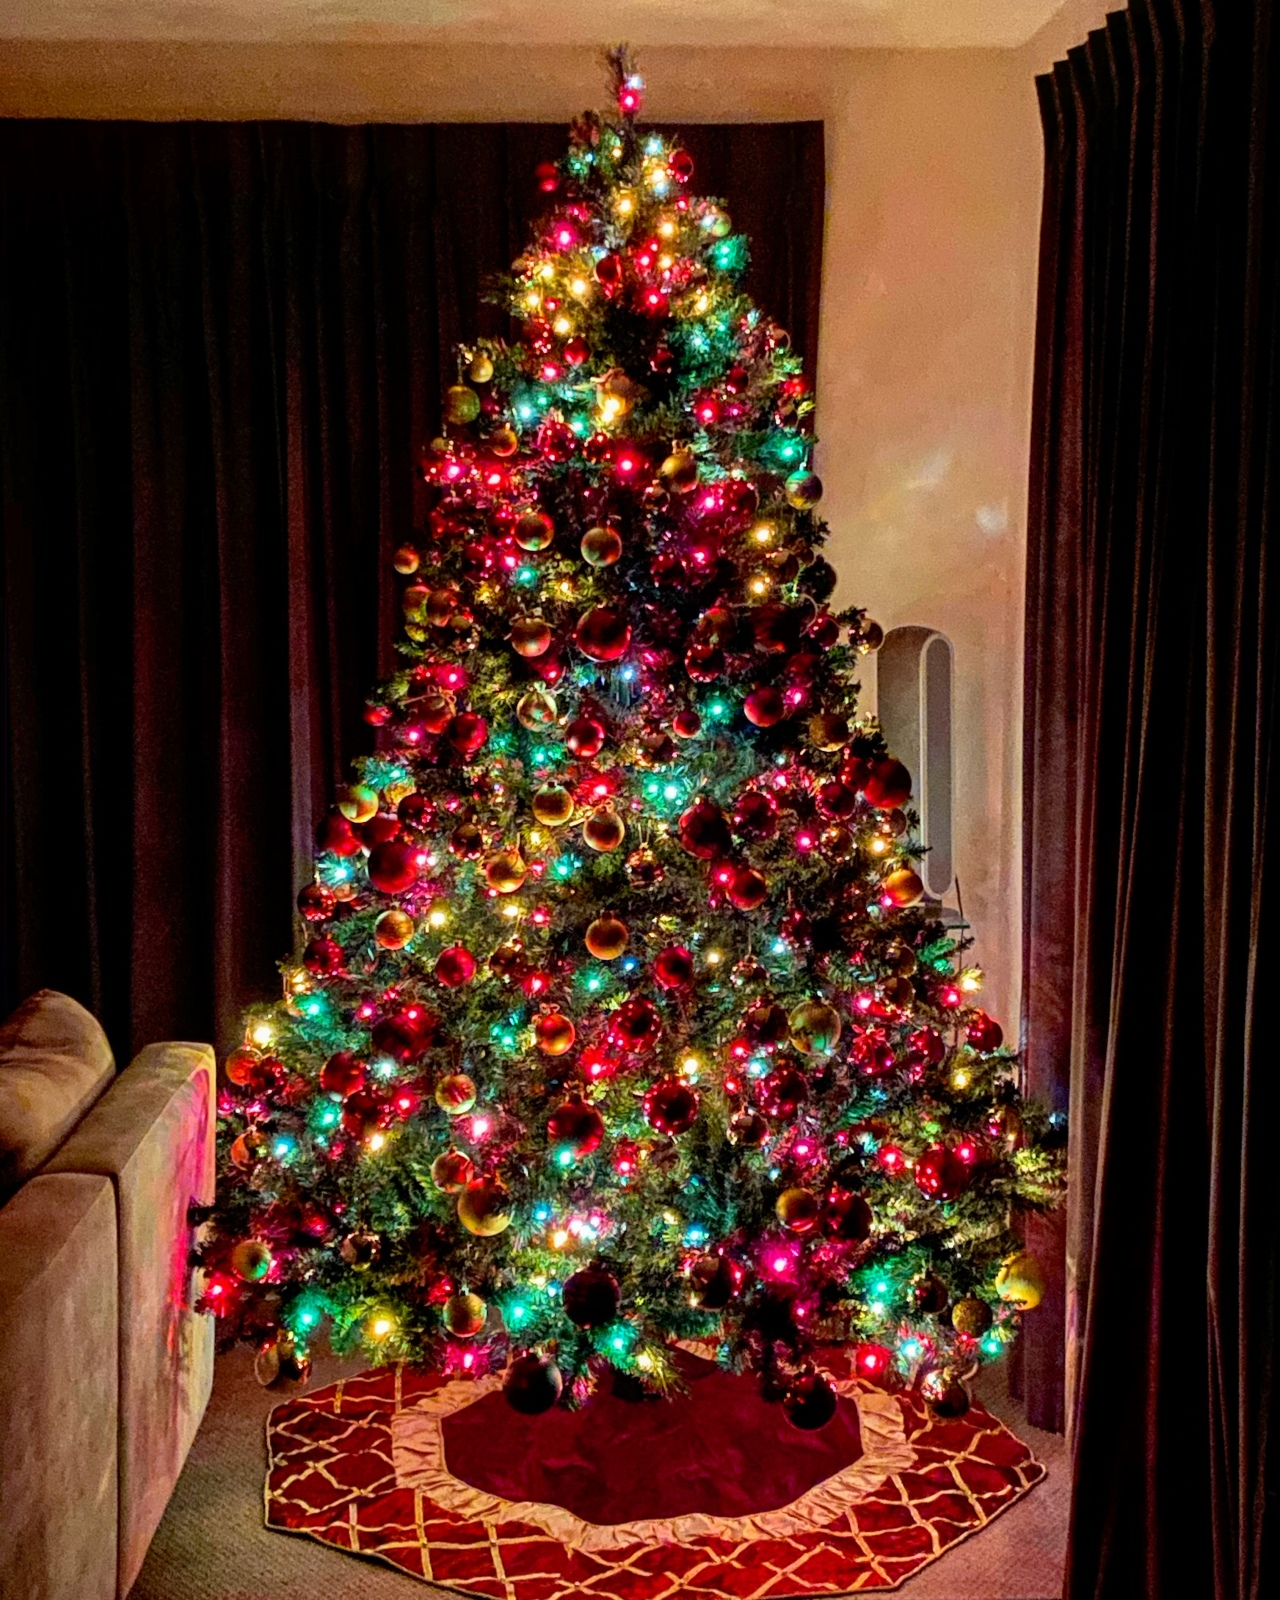 Traditional Christmas tree with gold and red ornaments and red, yellow, green, and blue lights